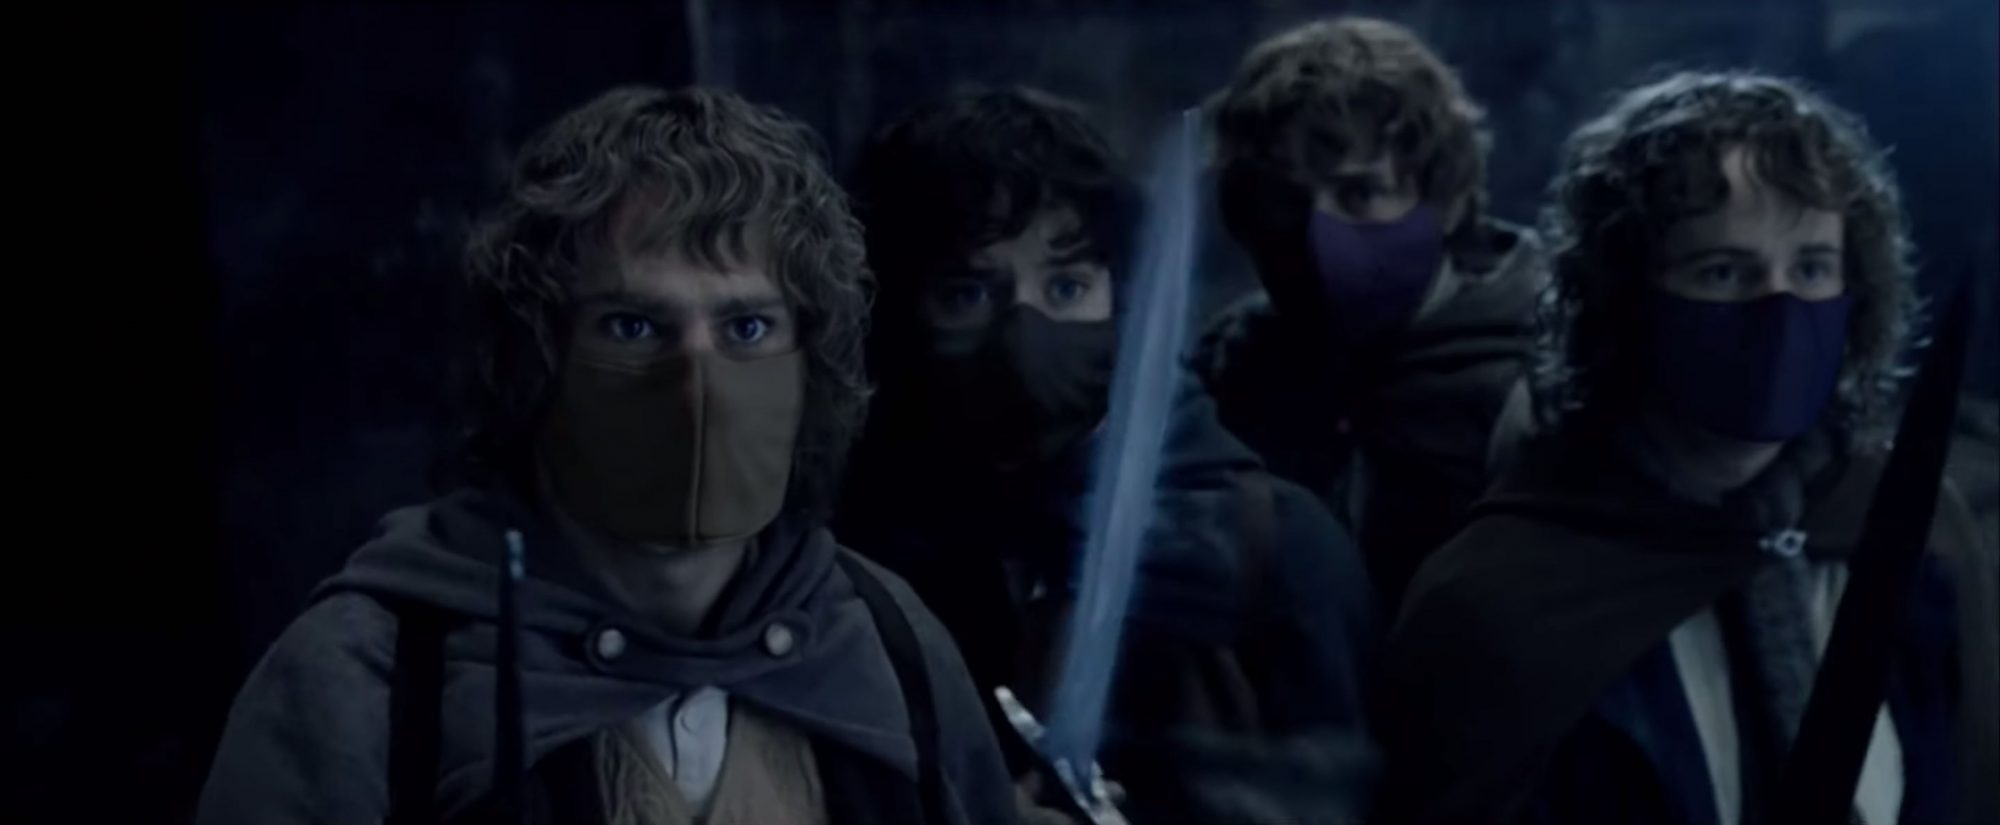 Mask Up America Lord of the Rings